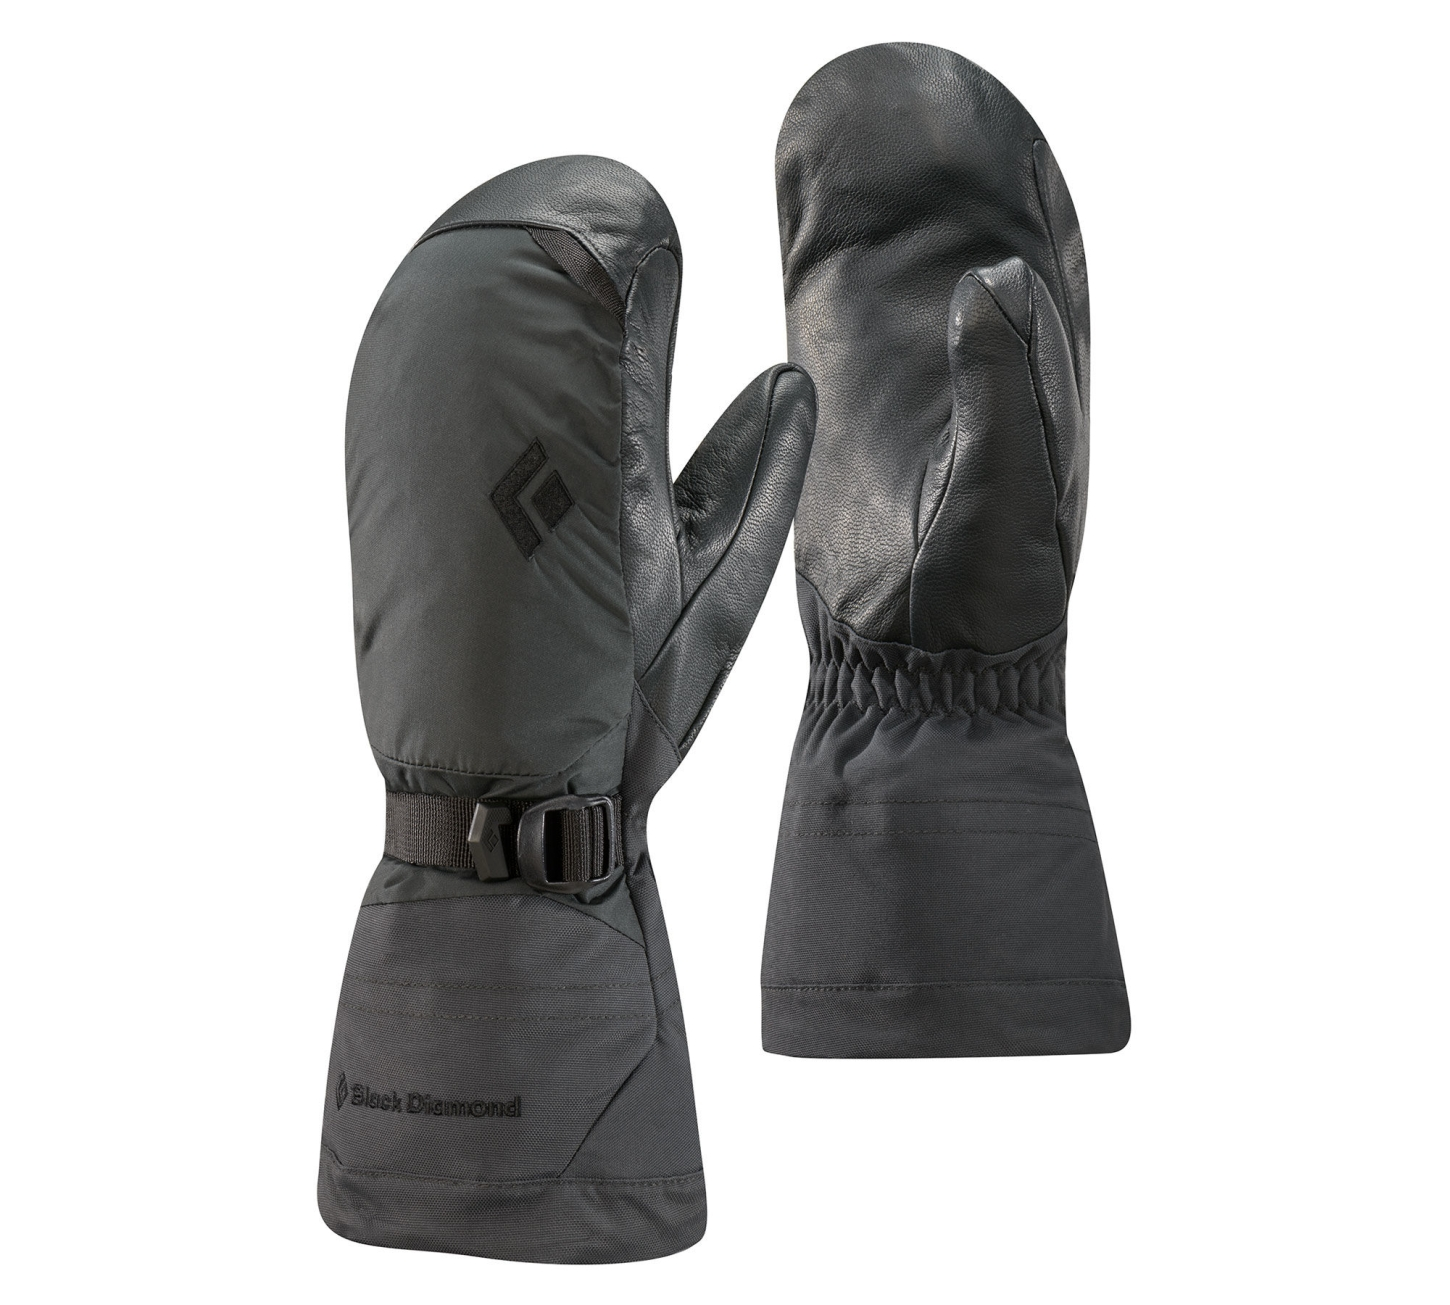 Black Diamond Ankhiale Goretex Mitts Women's Black-30